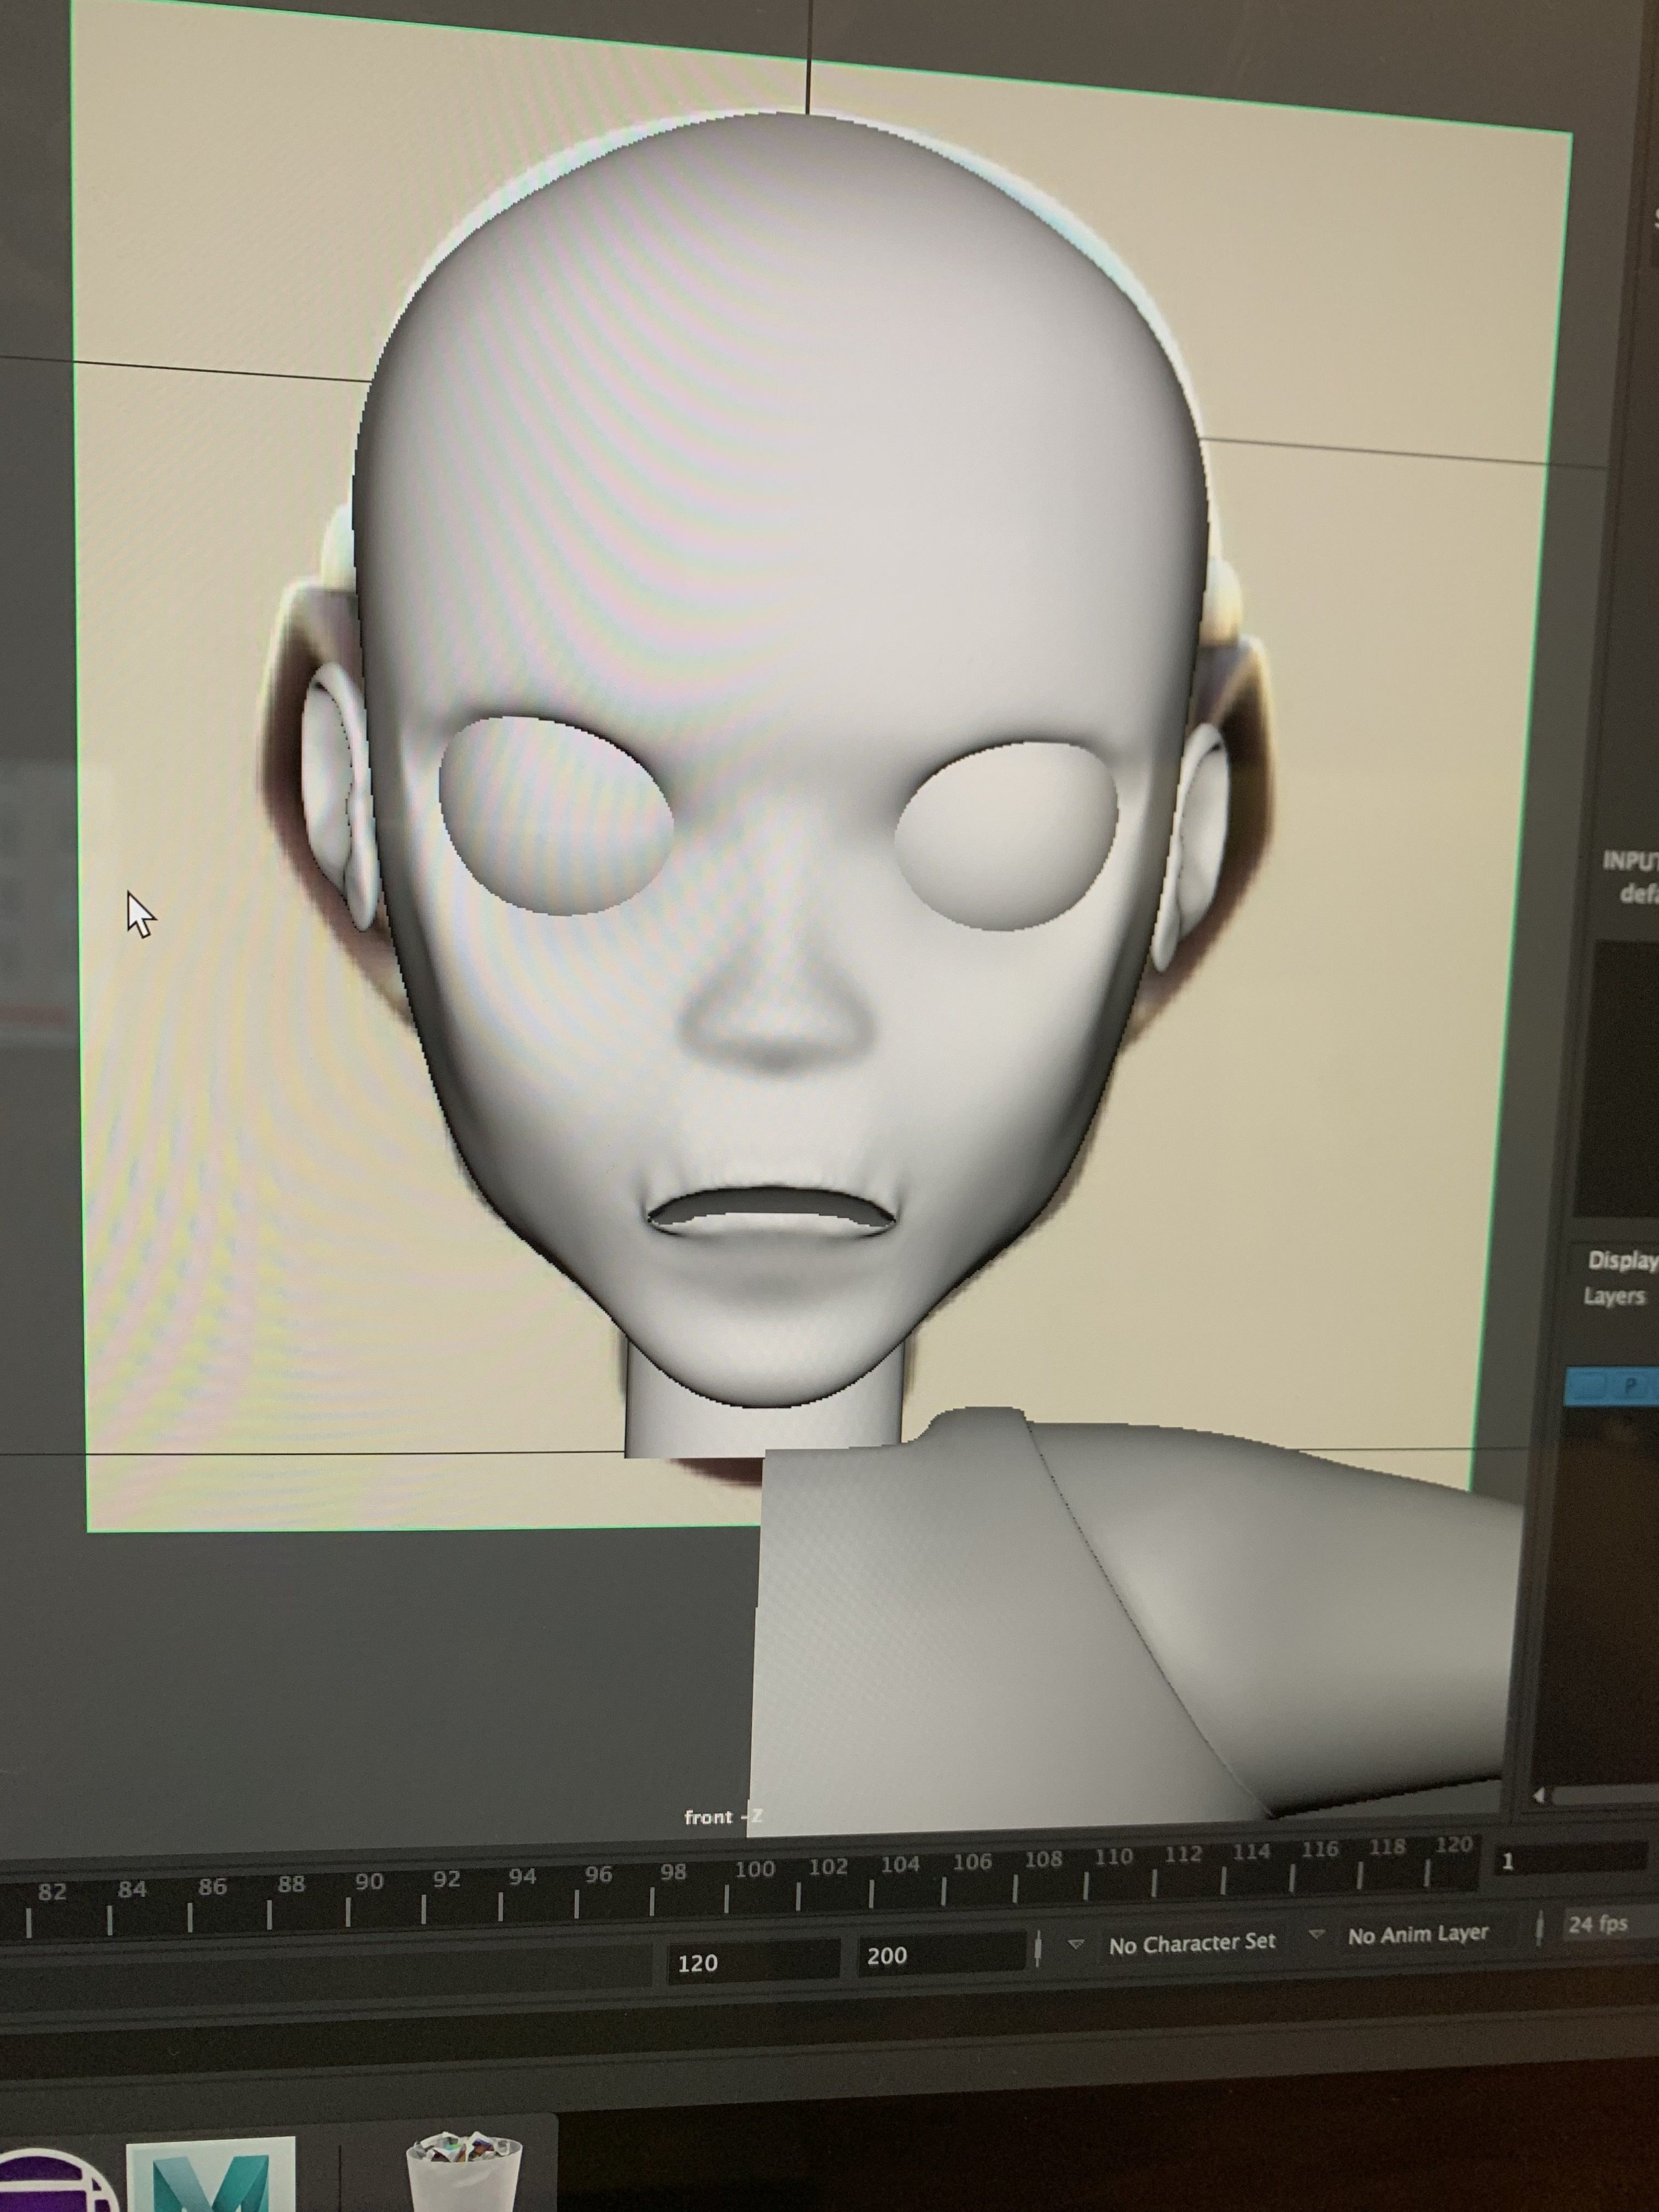 Early stages of modeling the face and head in Maya 2019.2